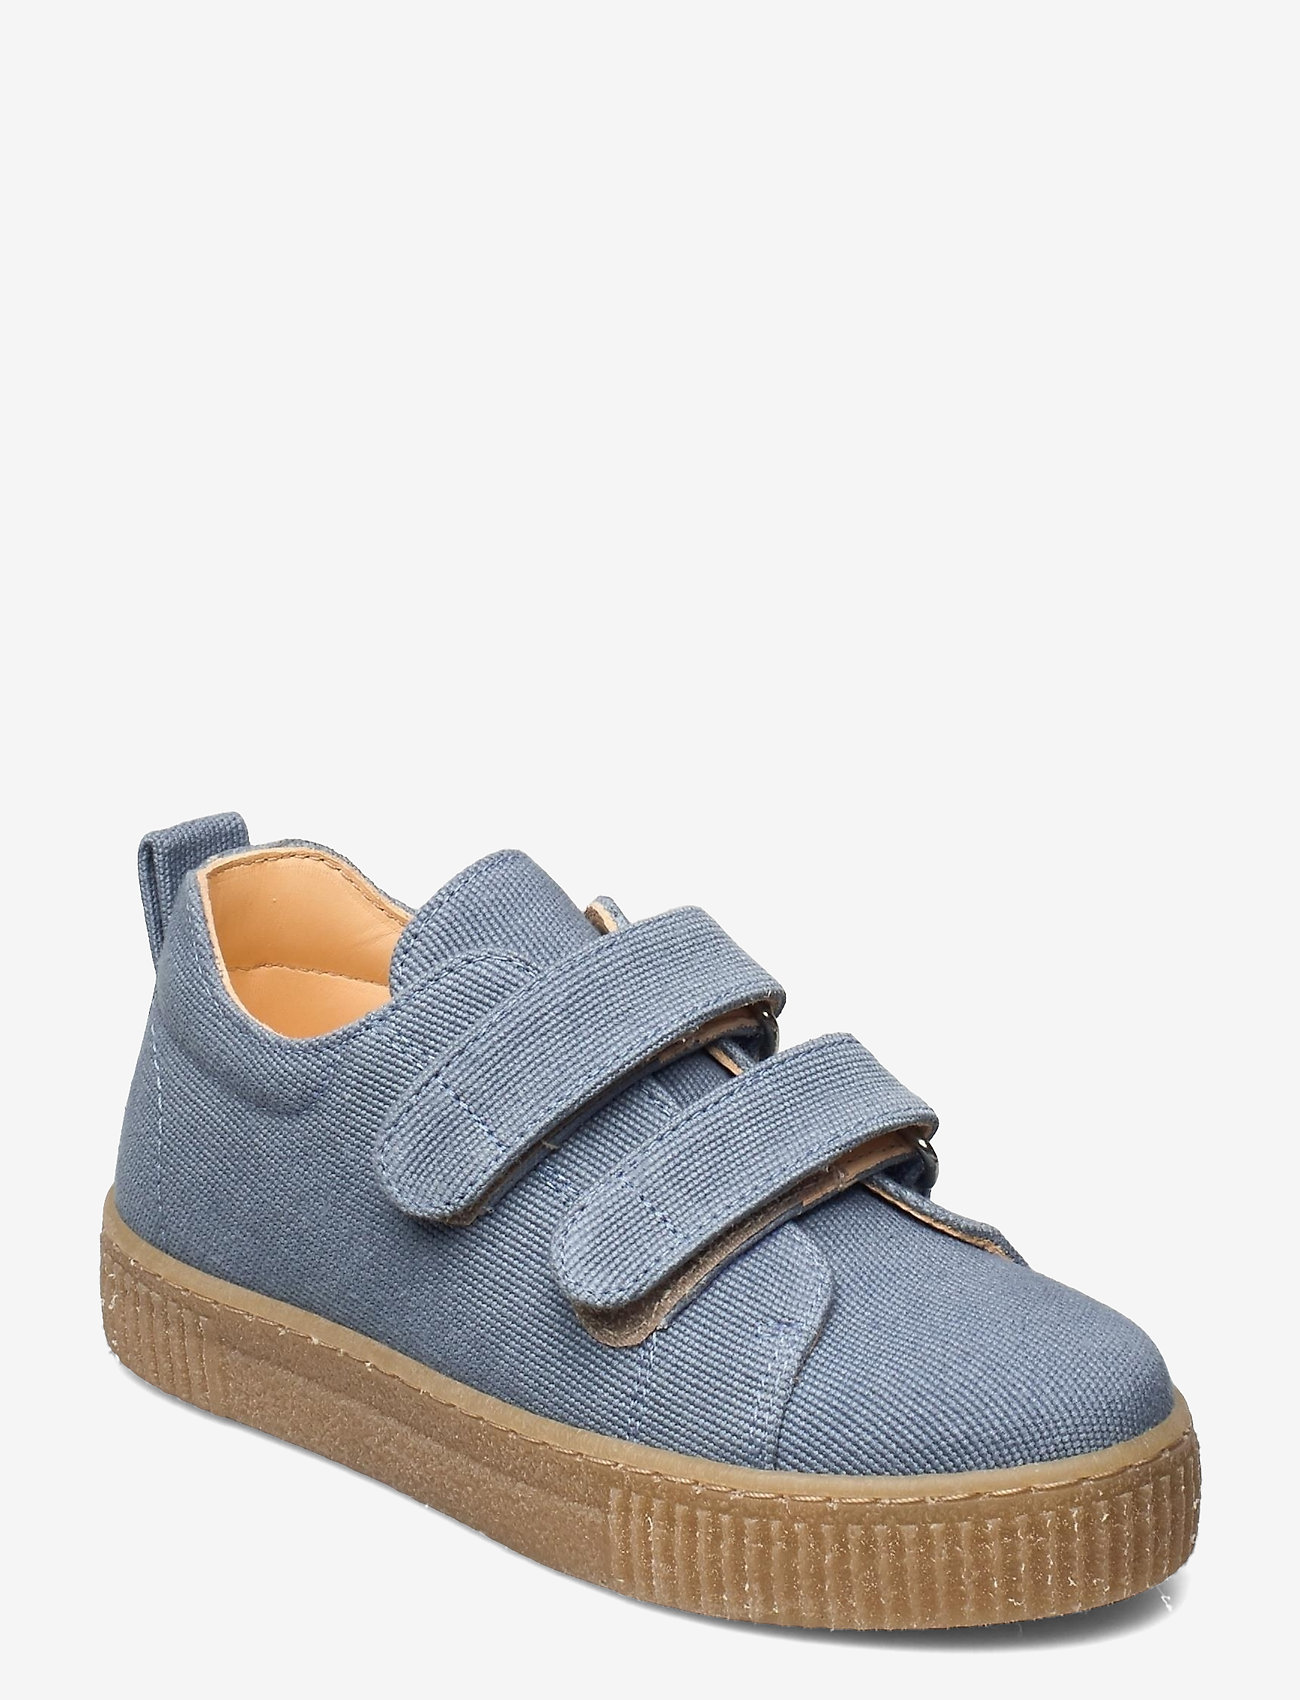 ANGULUS - Shoes - flat - with velcro - låga sneakers - 2673 denim blue - 0